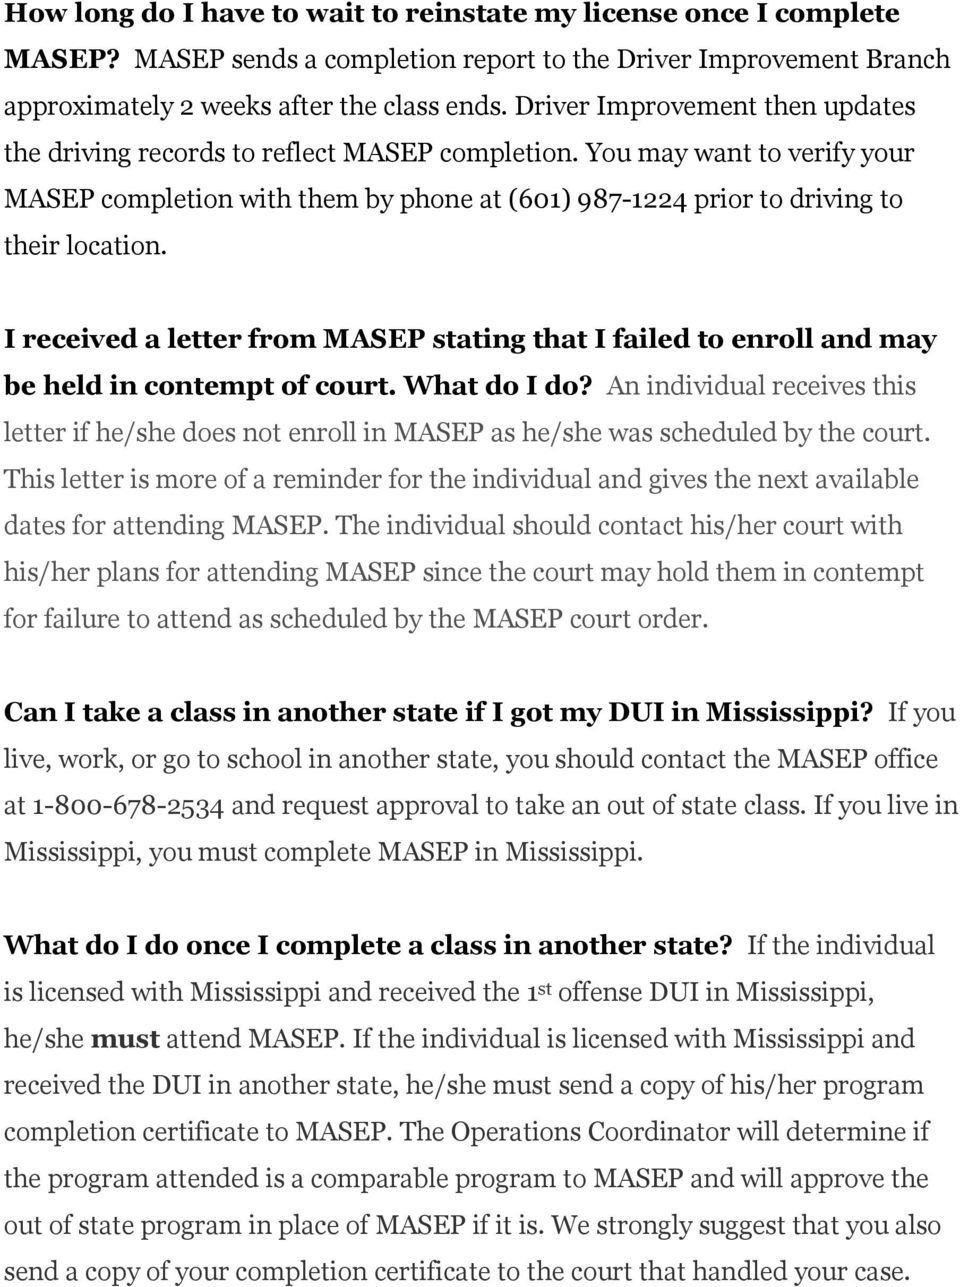 I received a letter from MASEP stating that I failed to enroll and may be held in contempt of court. What do I do?